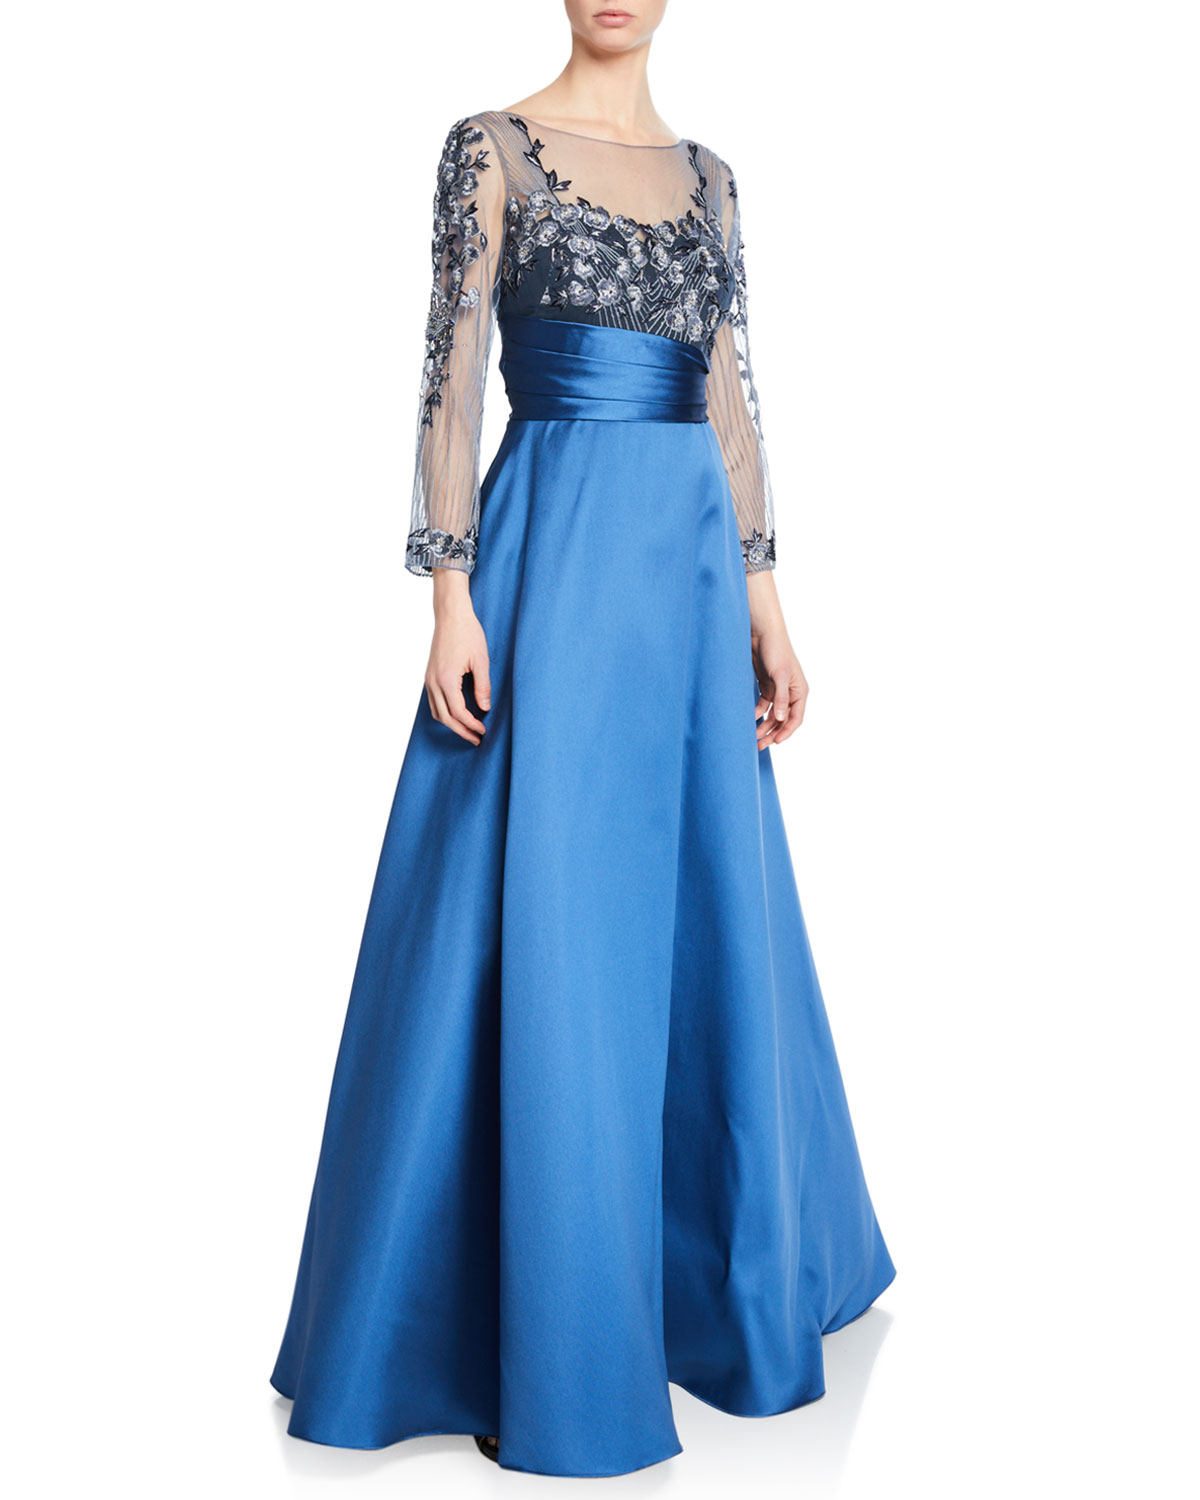 MARCHESA NOTTE Sweetheart Illusion Mikado Ball Gown W/ 3D Floral-Embroidered Bodice in Dark Blue